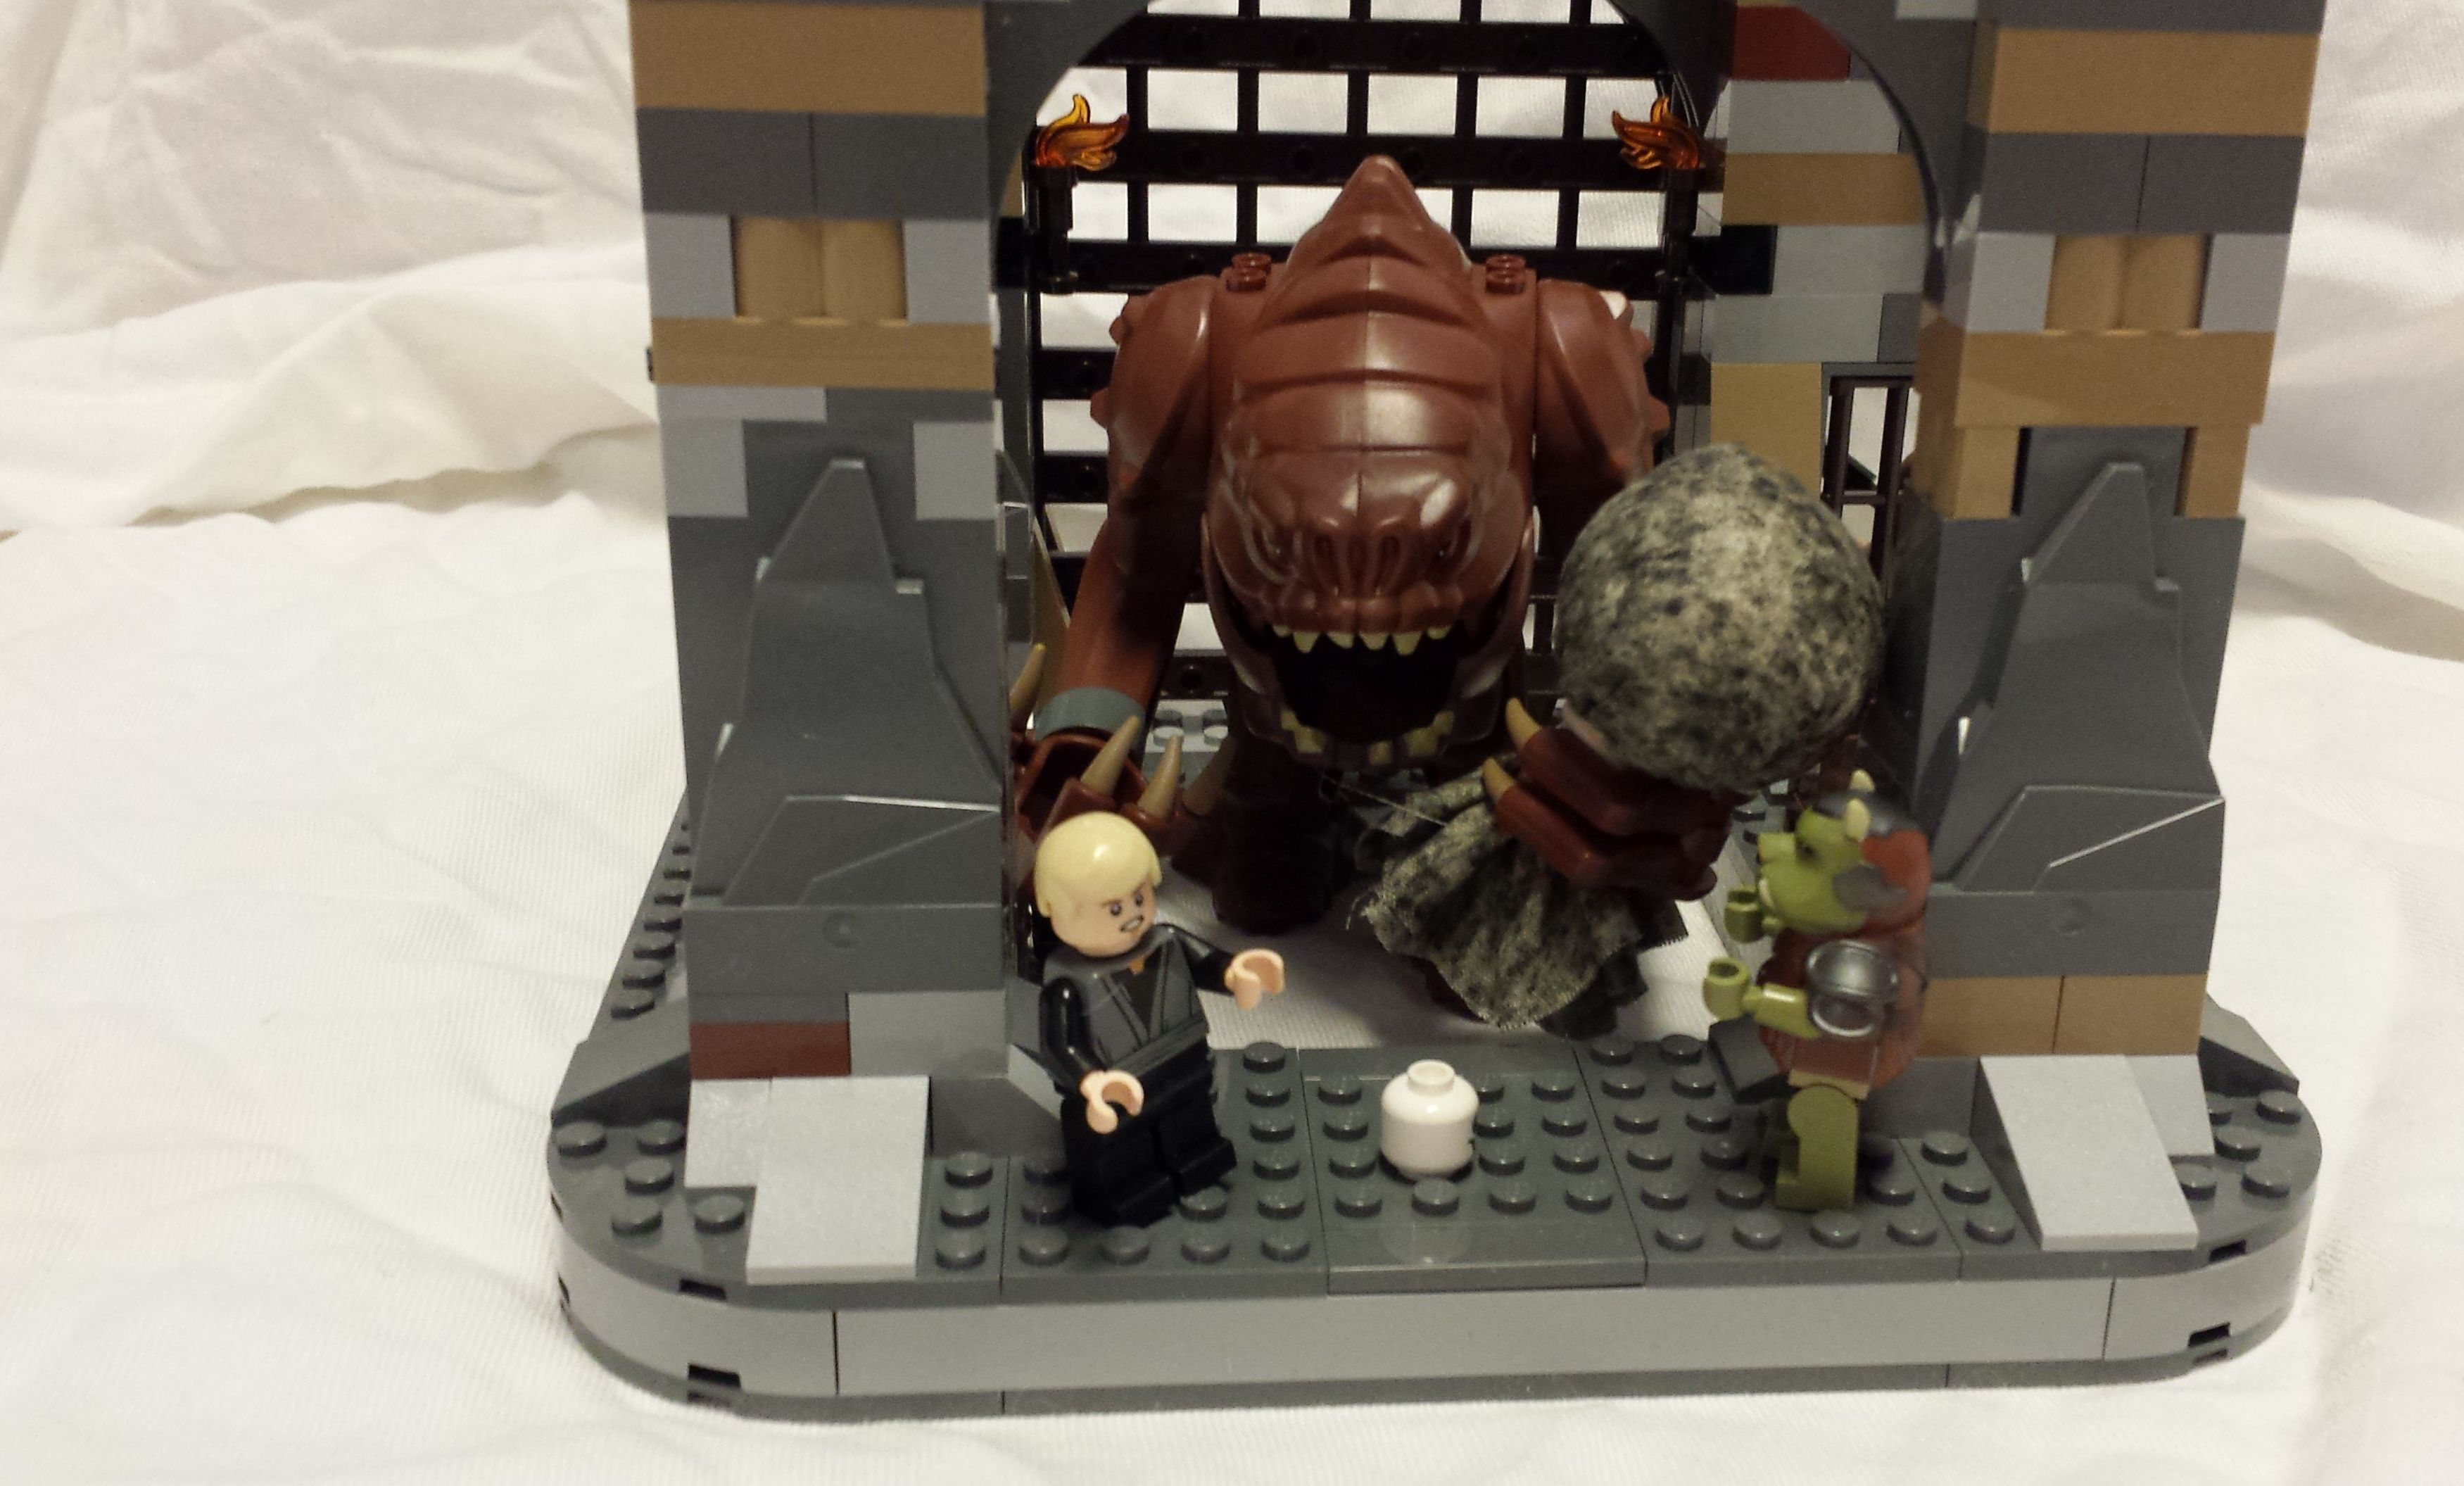 Luke's in trouble! The Rancor has the perfect boulder for throwing.  www.bradleypackets.com